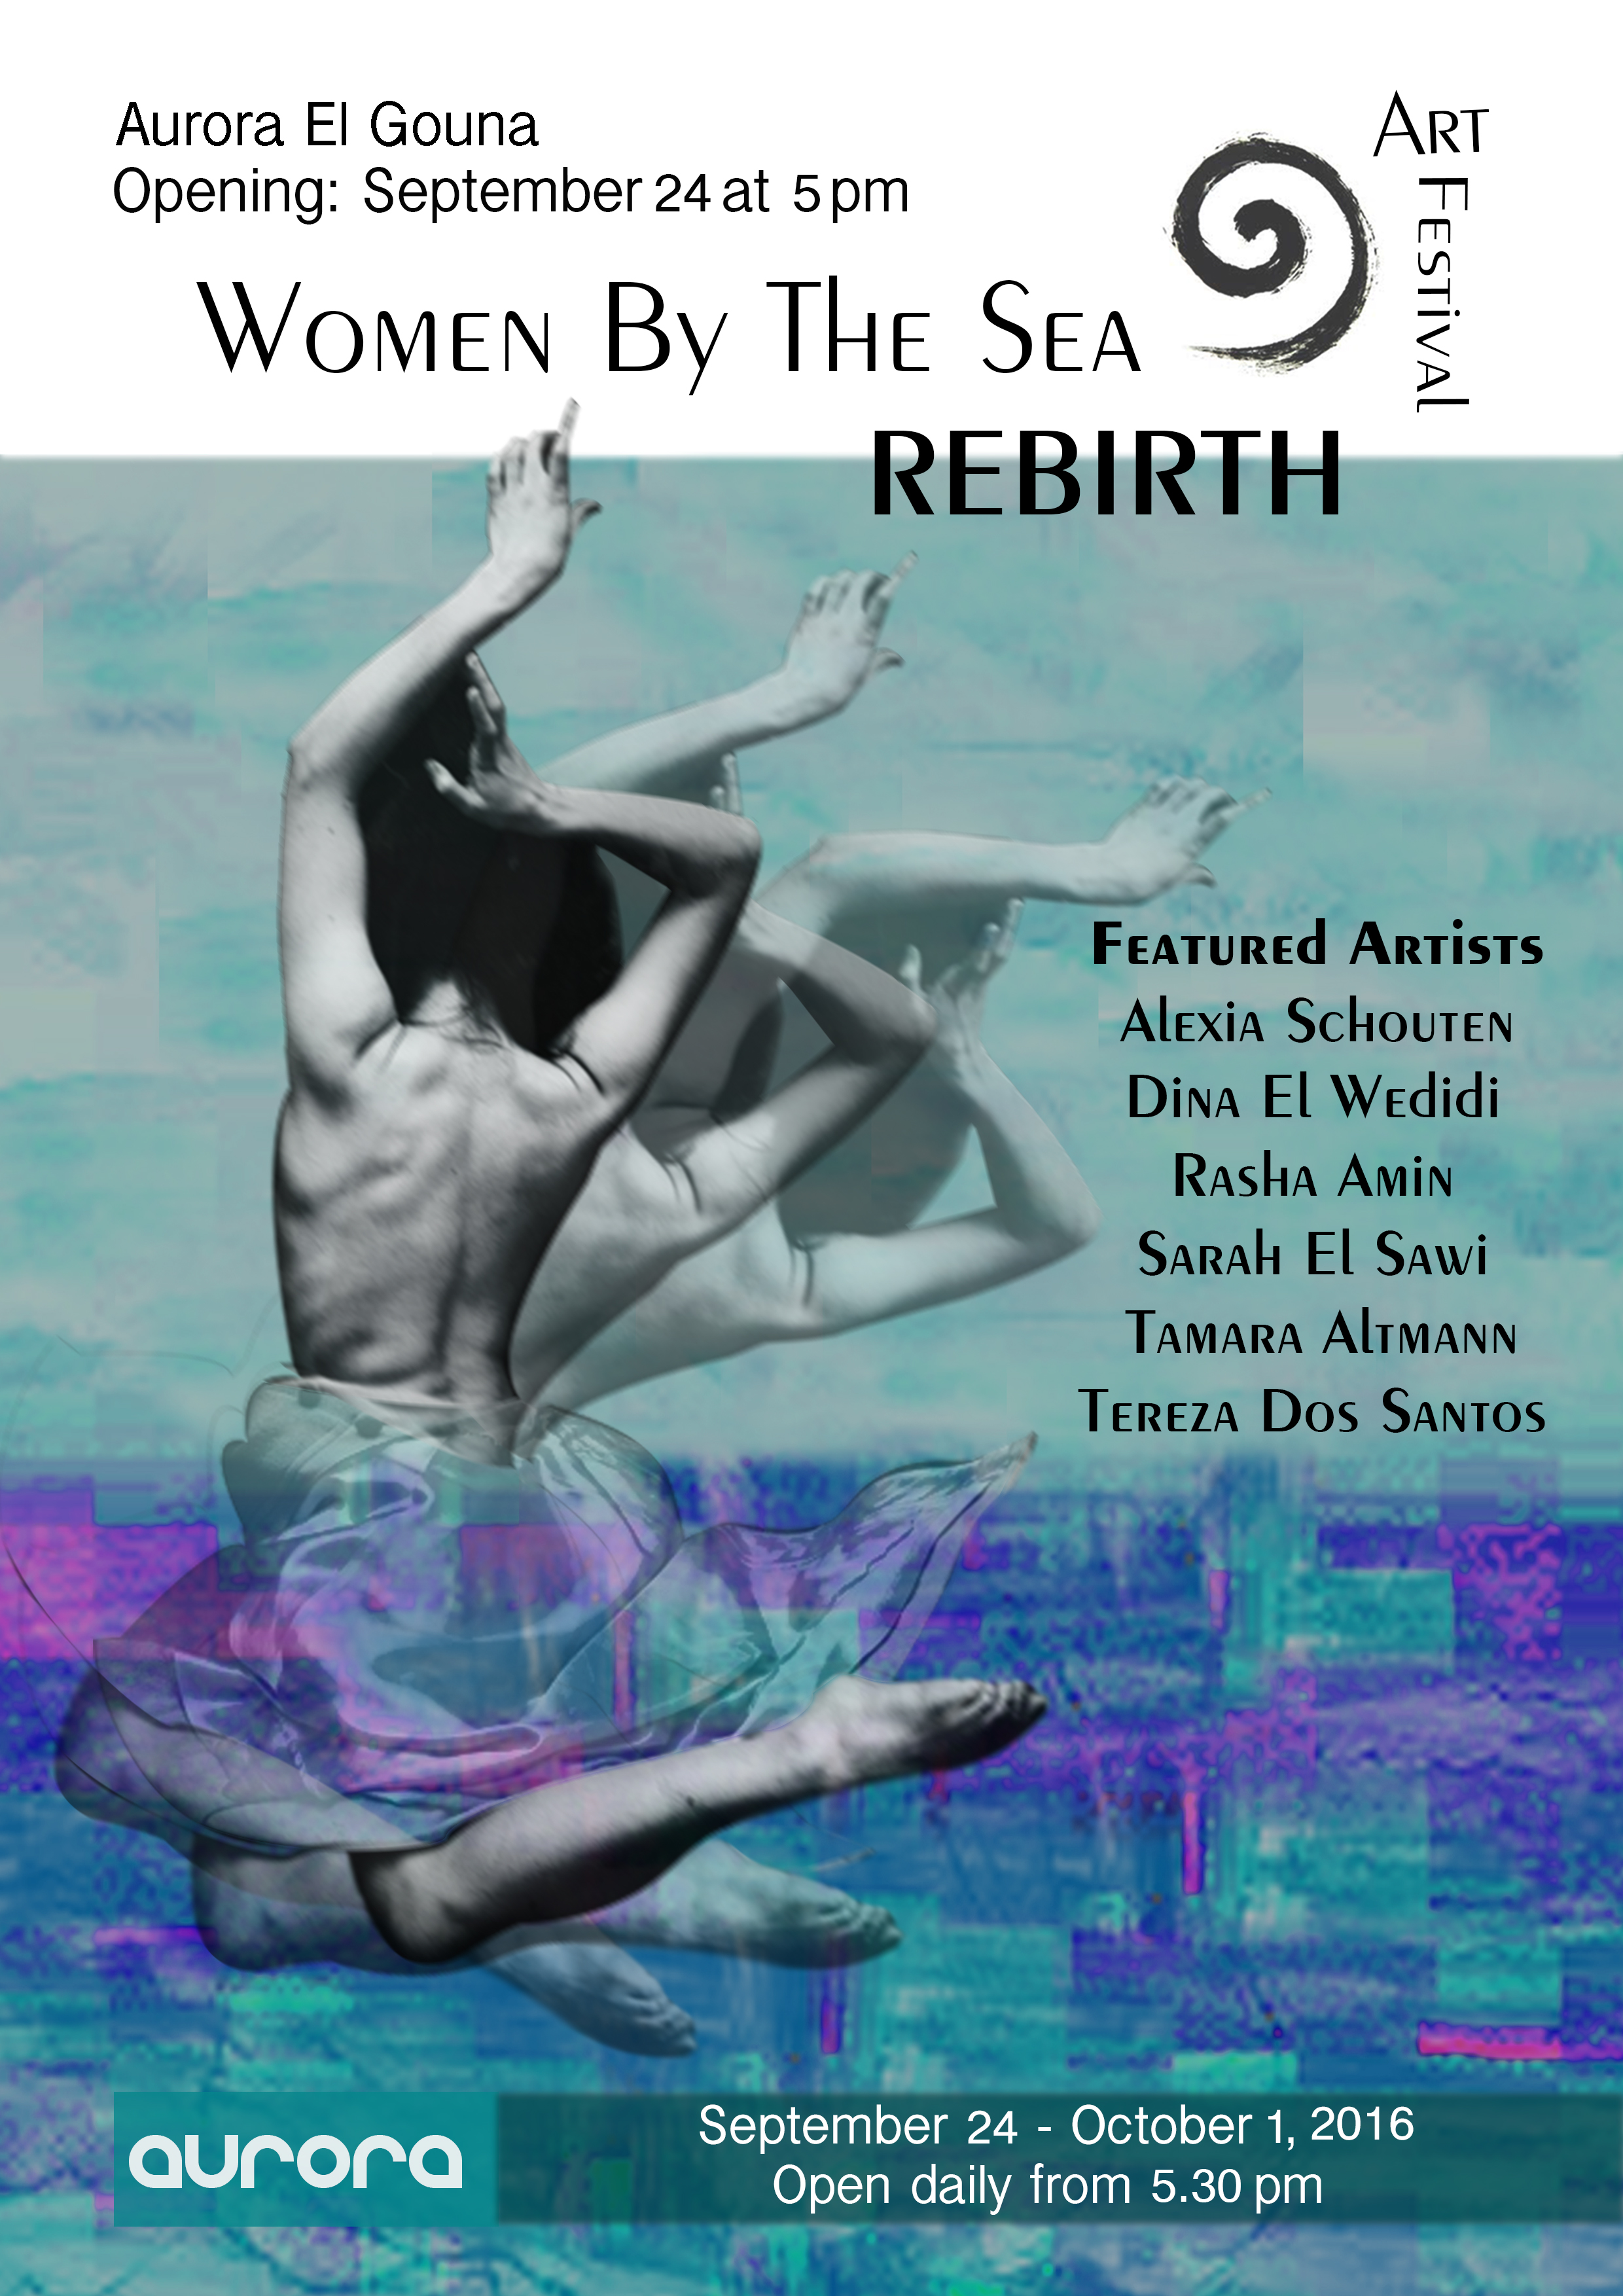 Women By The Sea 2016: Rebirth